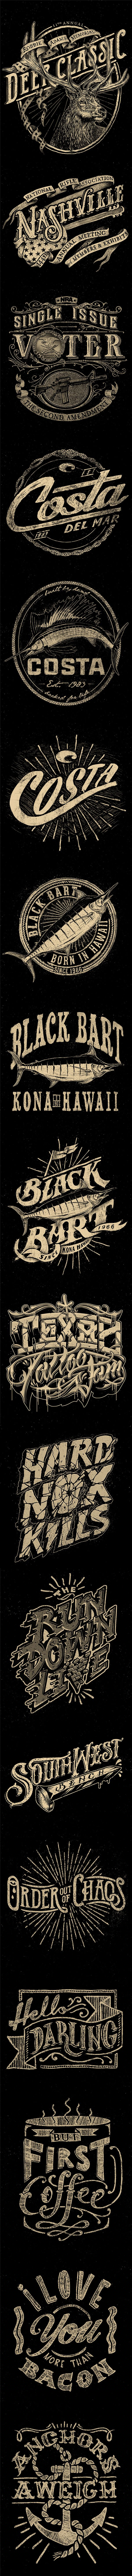 Hand Drawn Typography By Jeff Trish